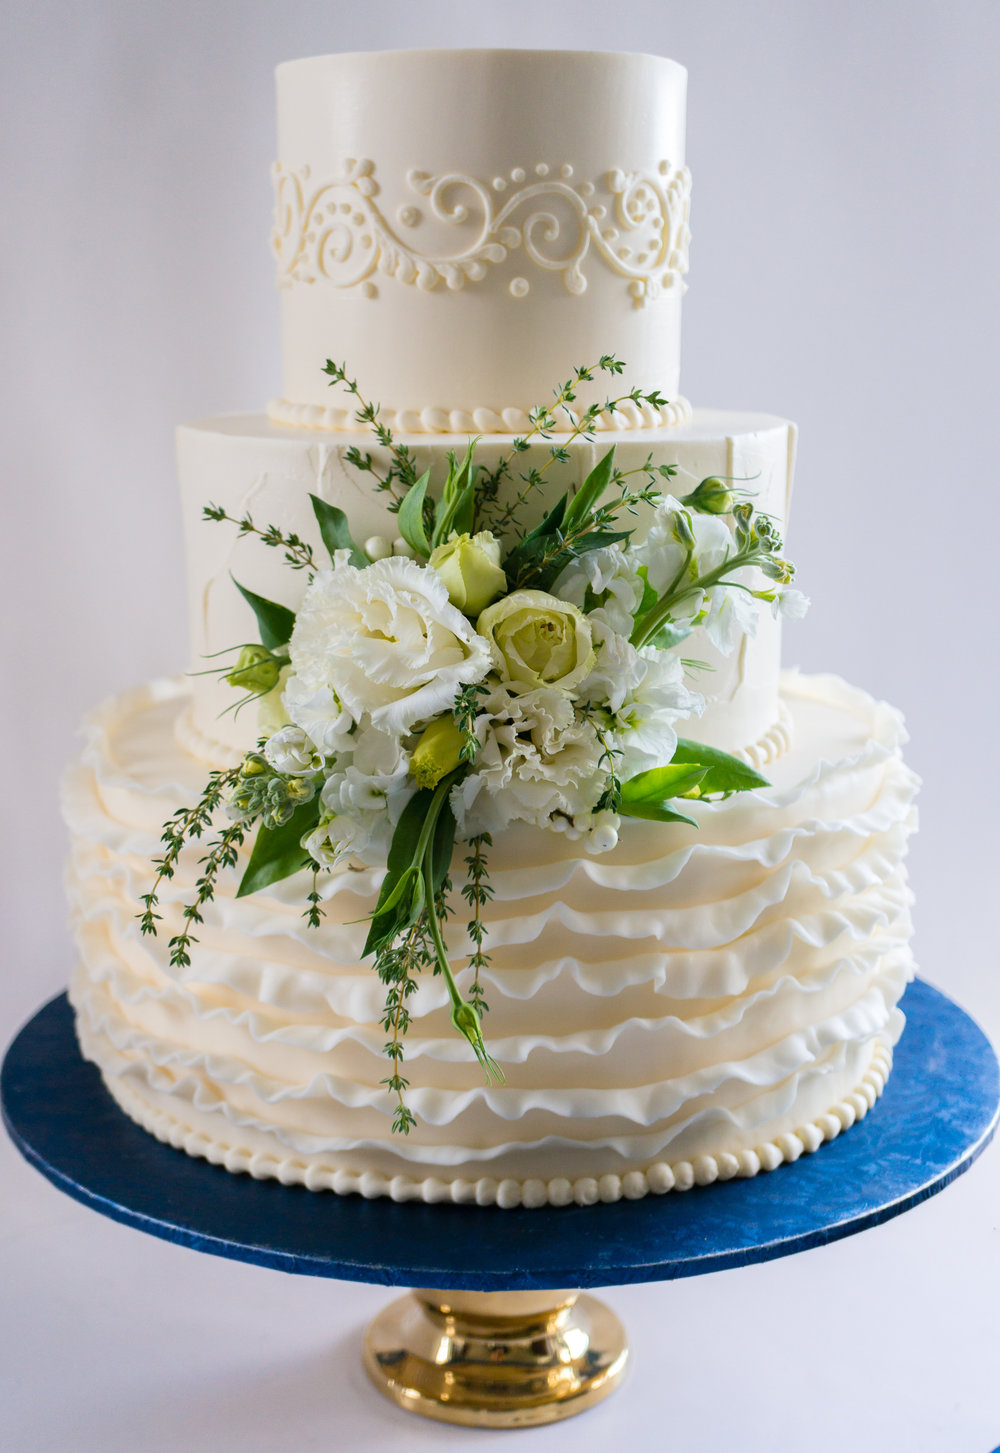 local wedding cakes wedding cakes papa haydn 16921